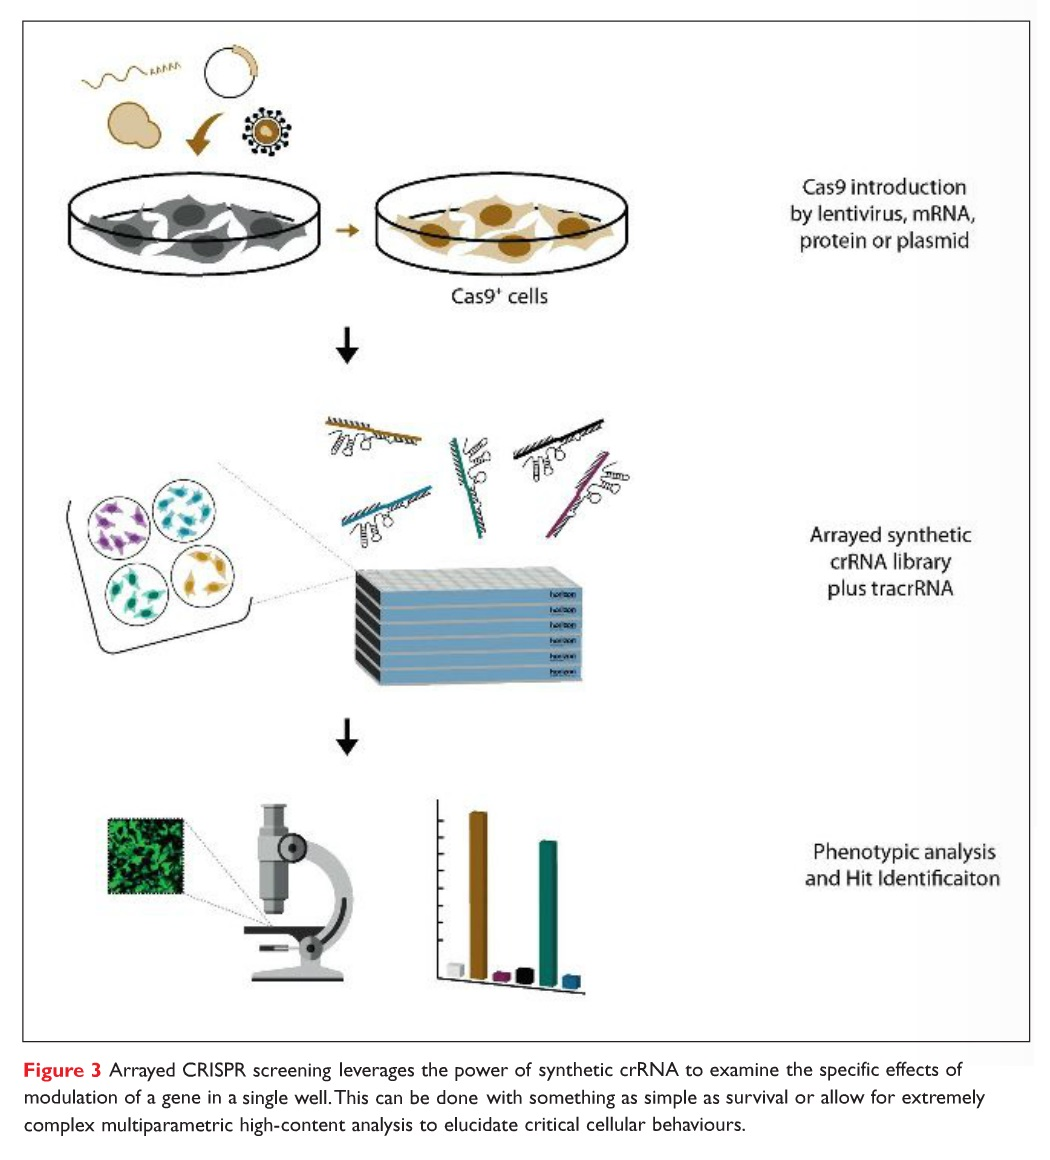 Figure 3 Arrayed CRISPR screening leverages the power of synthetic crRNA to examine the specific effects of modulation of a gene in a single well